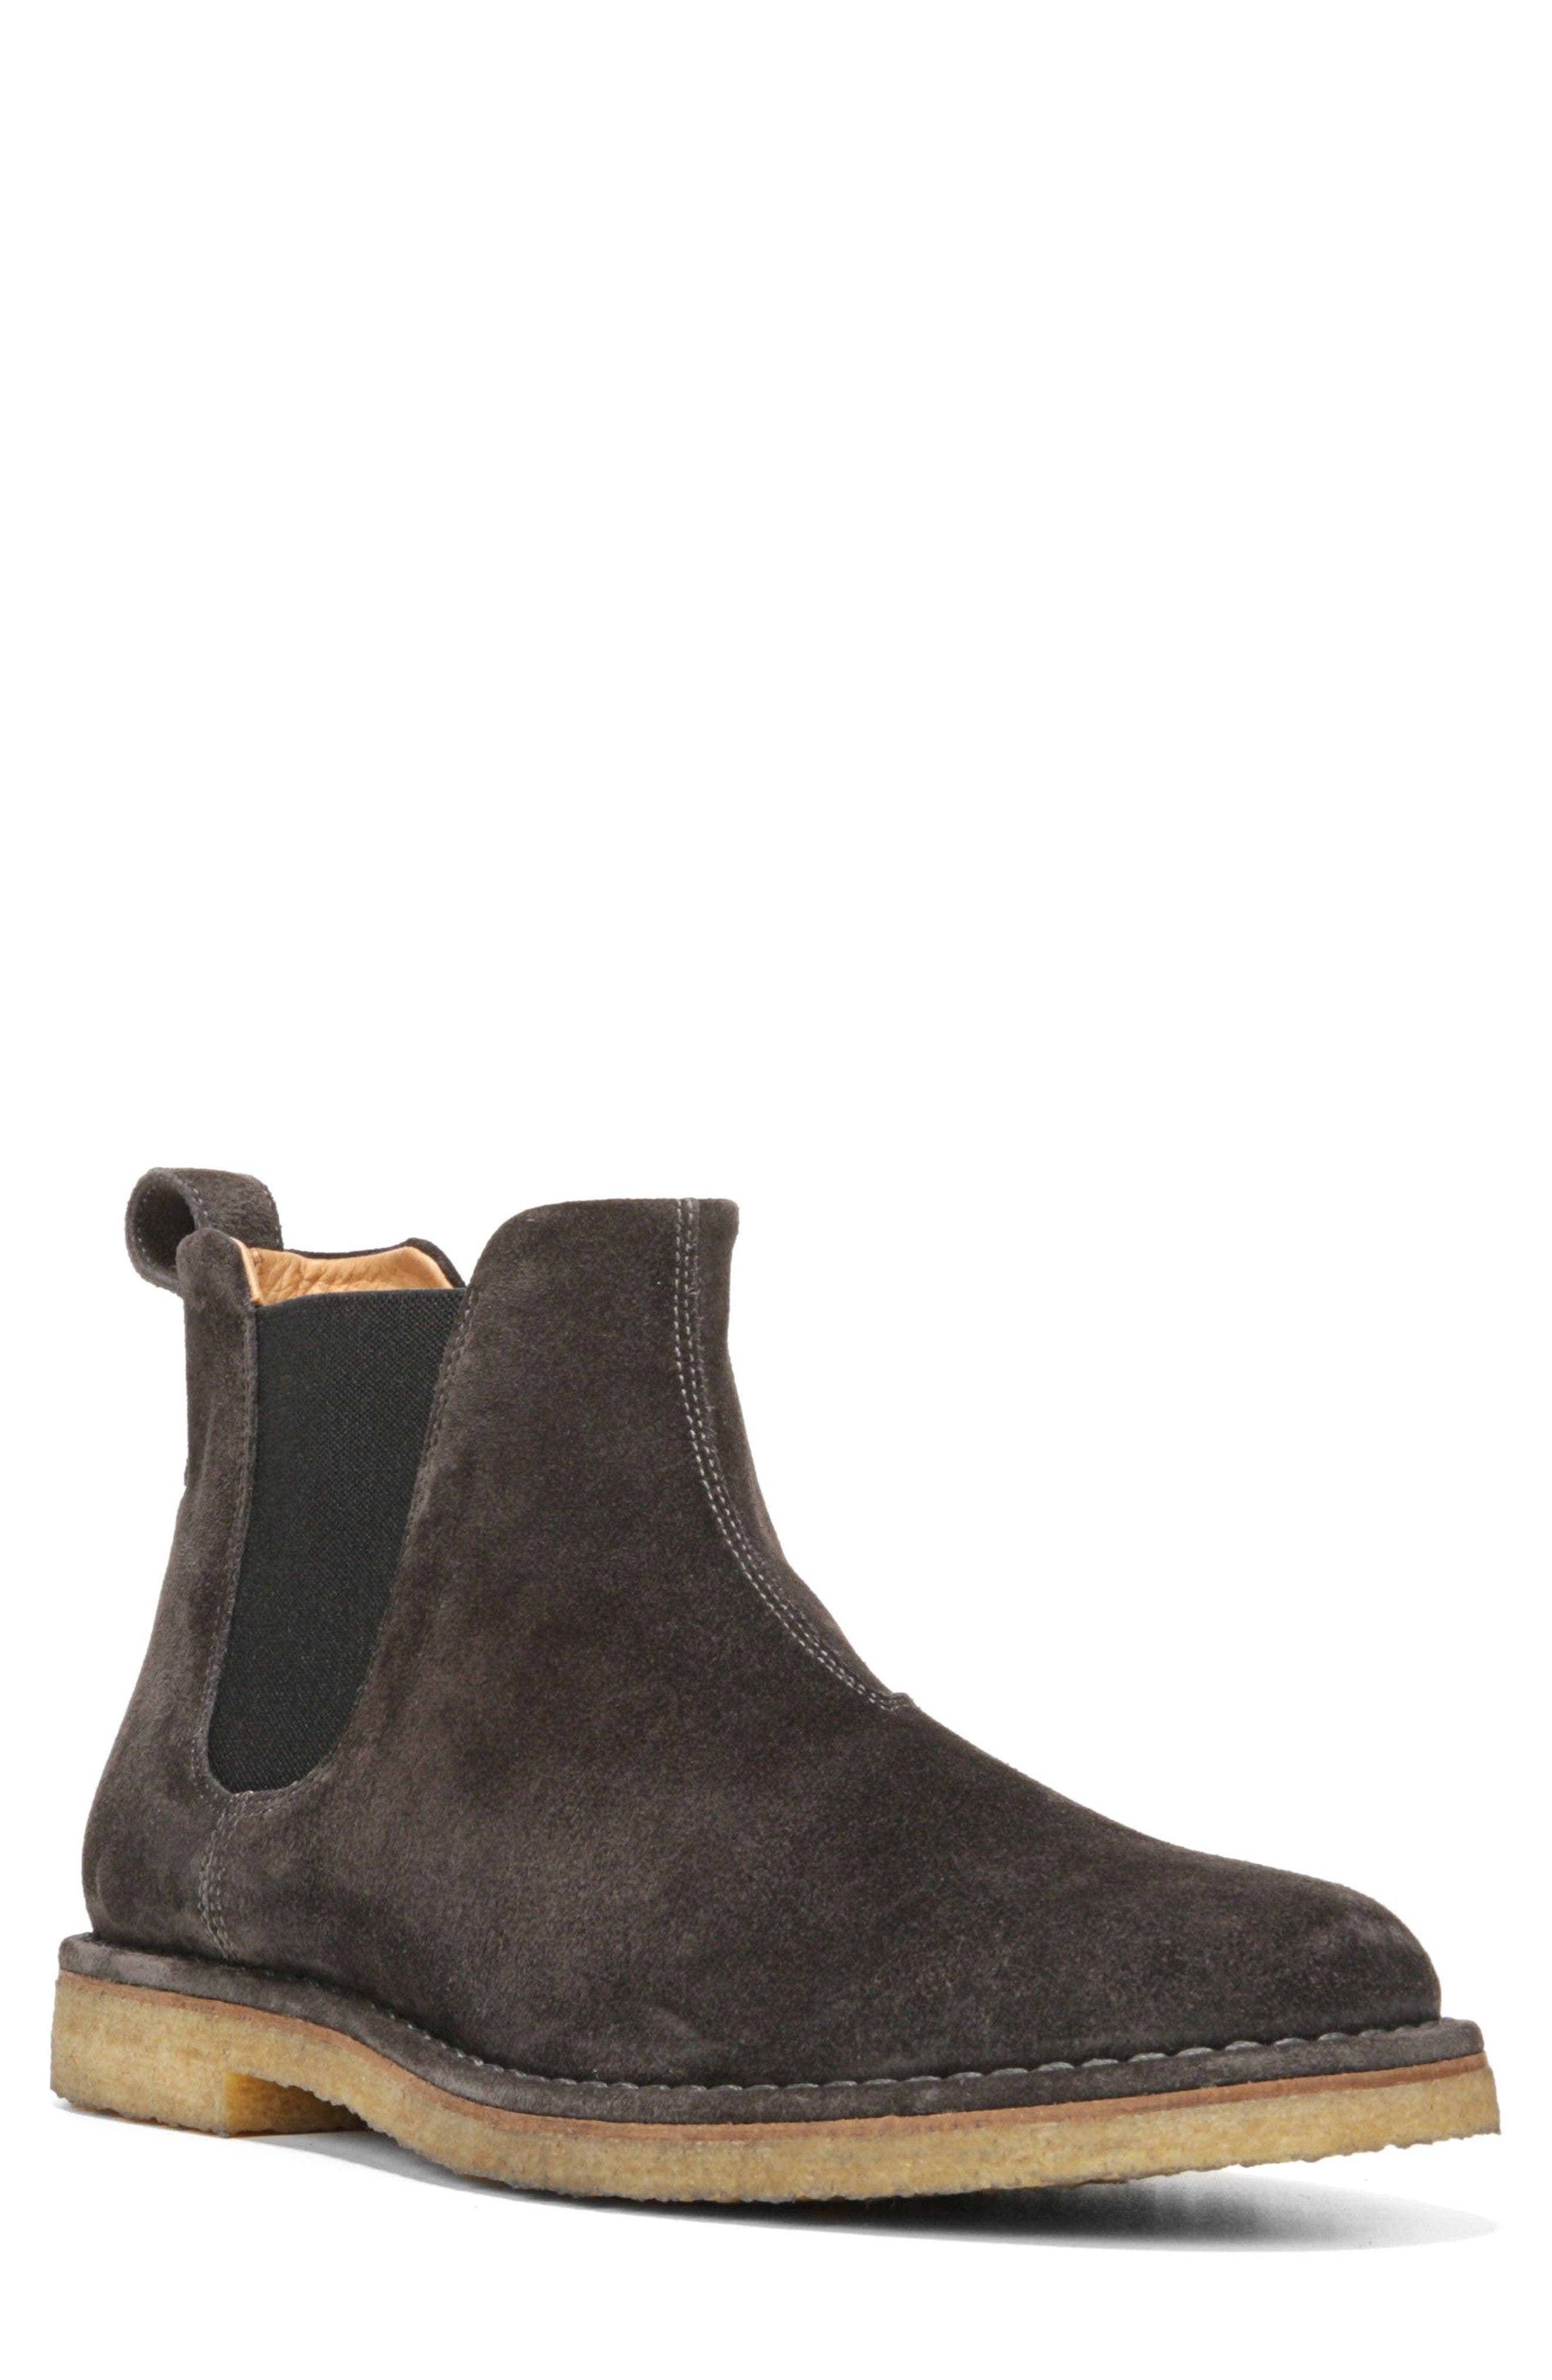 VINCE 'Sawyer' Chelsea Boot, Main, color, 021